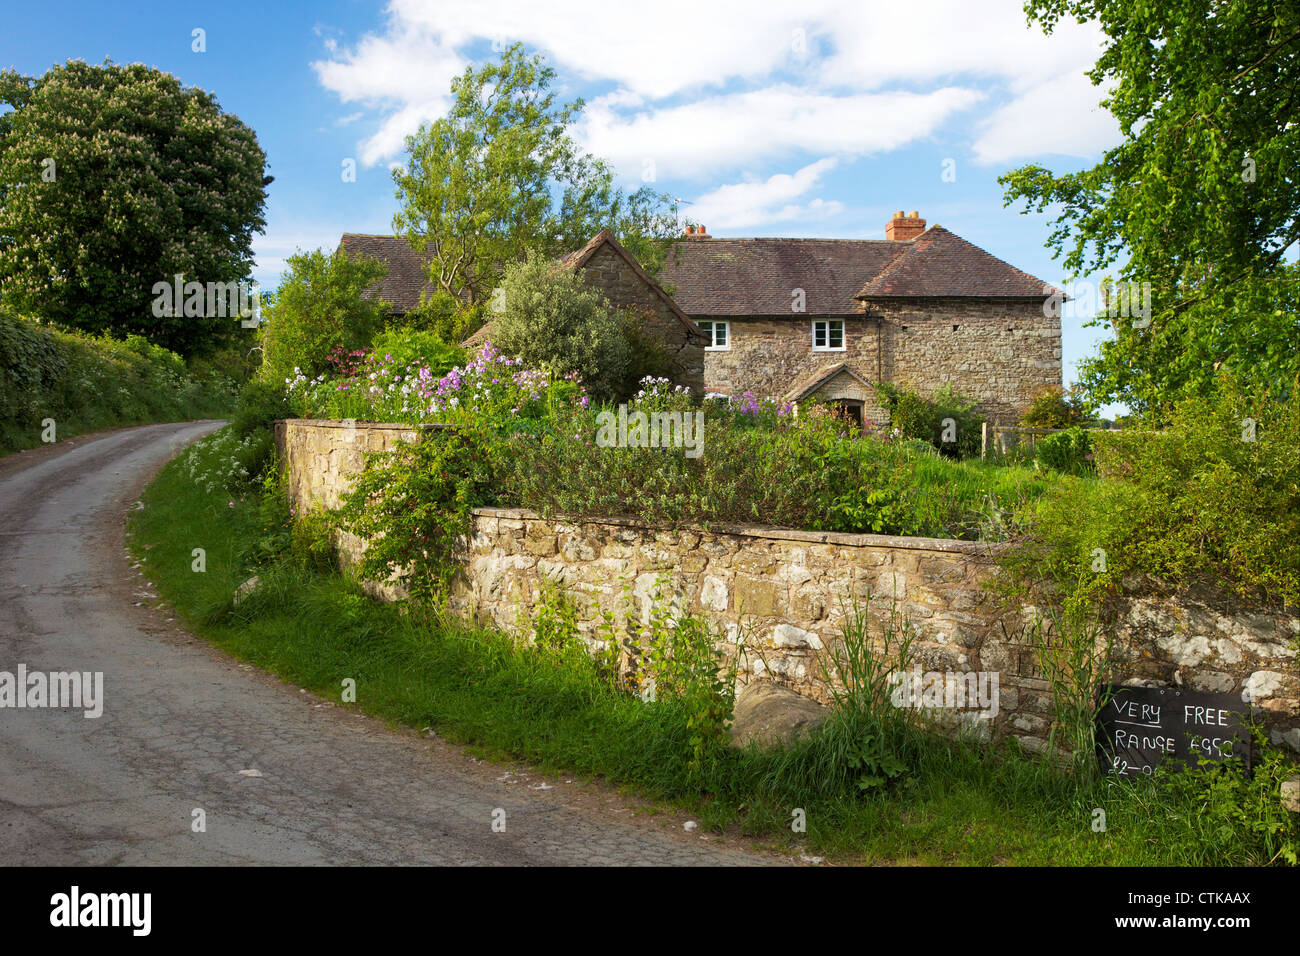 Very free range eggs for sale at english farmhouse in Cardington Stock Royalty Free Image